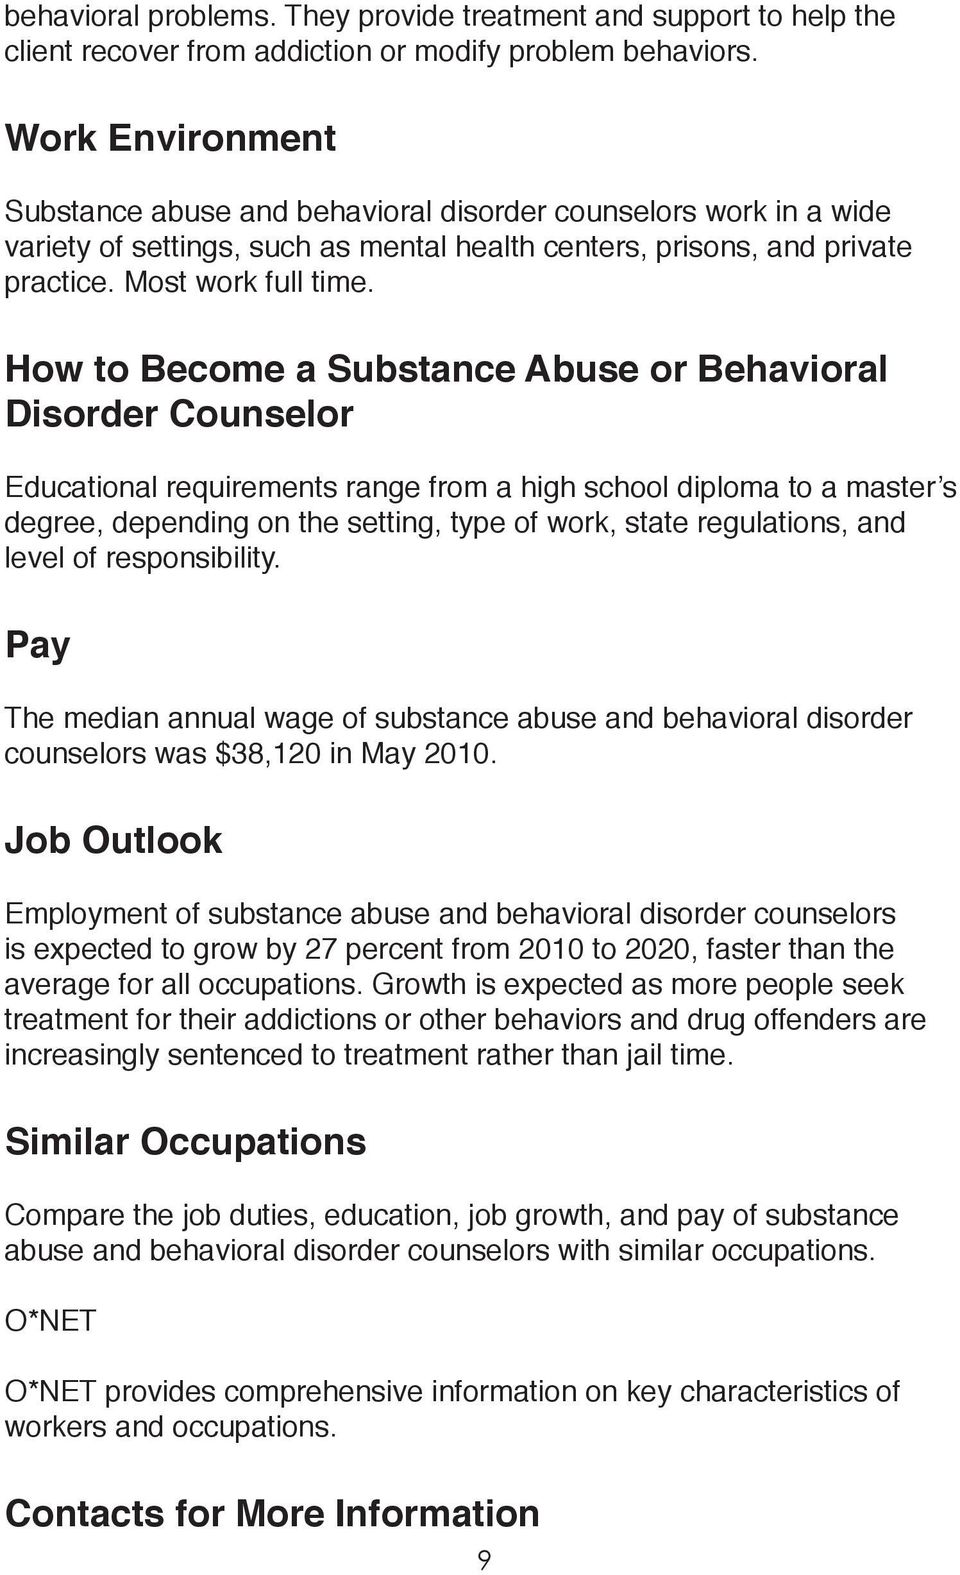 How to Become a Substance Abuse or Behavioral Disorder Counselor Educational requirements range from a high school diploma to a master s degree, depending on the setting, type of work, state